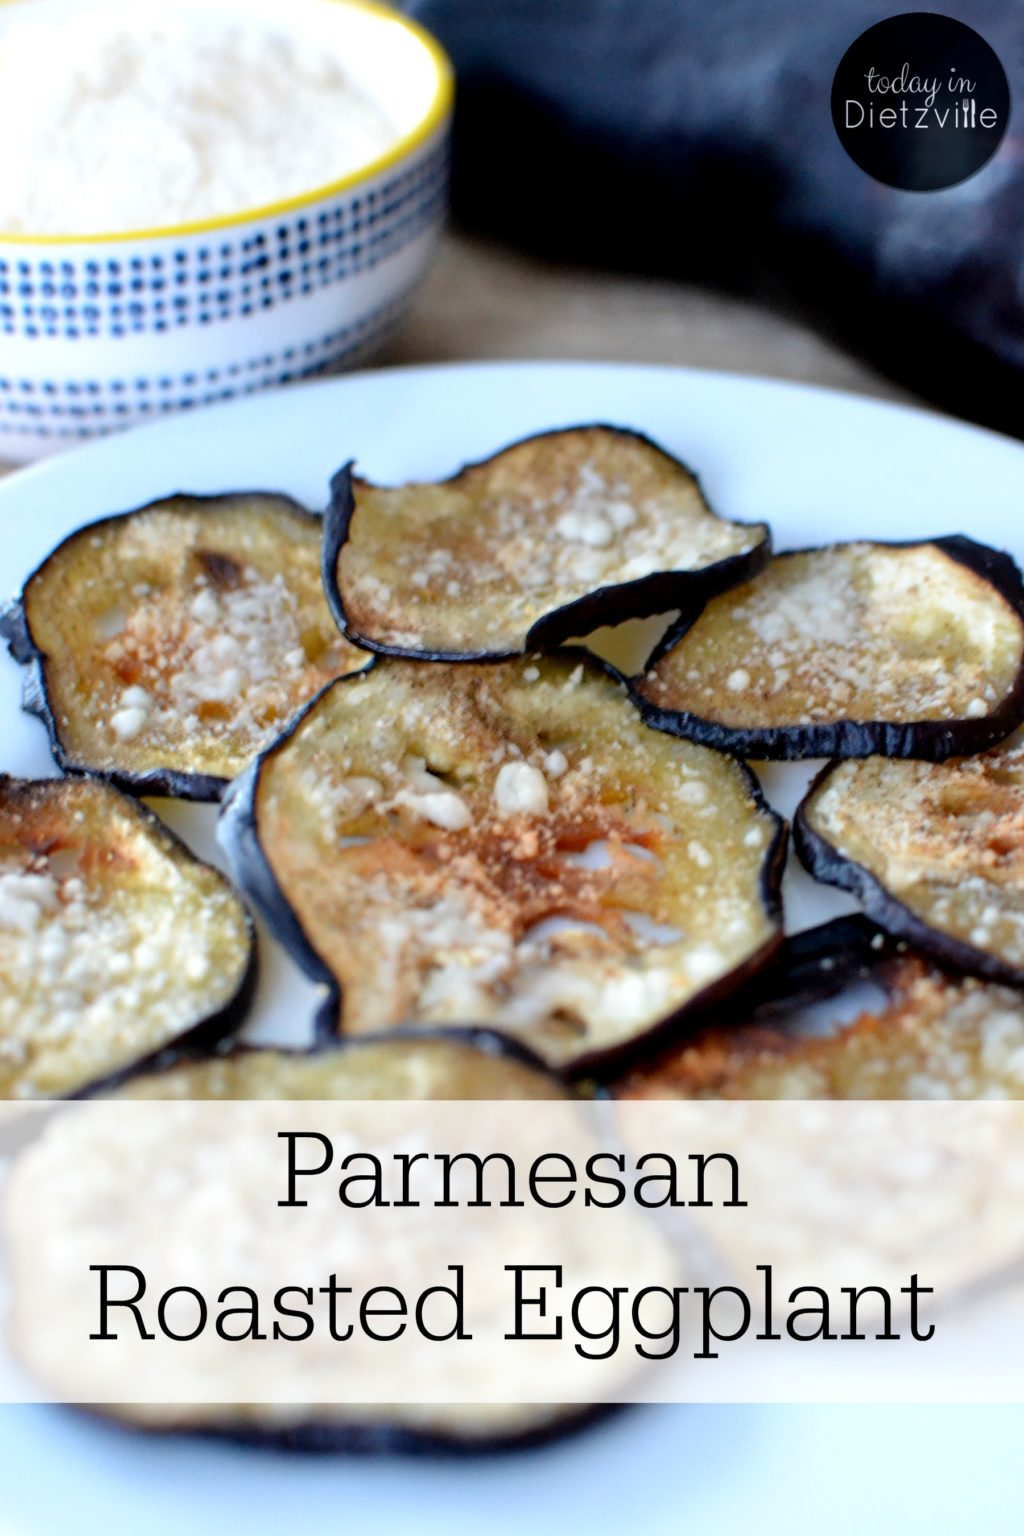 Parmesan Roasted Eggplant | Eggplant is colorful! And color in veggies and fruits is a sure sign of nutrition, antioxidants, and enzymes! Eggplants are super high in fiber, but low in starch -- so they're excellent for gut health (ahem, regularity). This high fiber helps you feel full without eating a large amount of food, so eat more eggplant if you're watching your waistline. Parmesan Roasted Eggplant is one of my family's favorite ways to enjoy this lovely vegetable! | AllTheNourishingThings.com